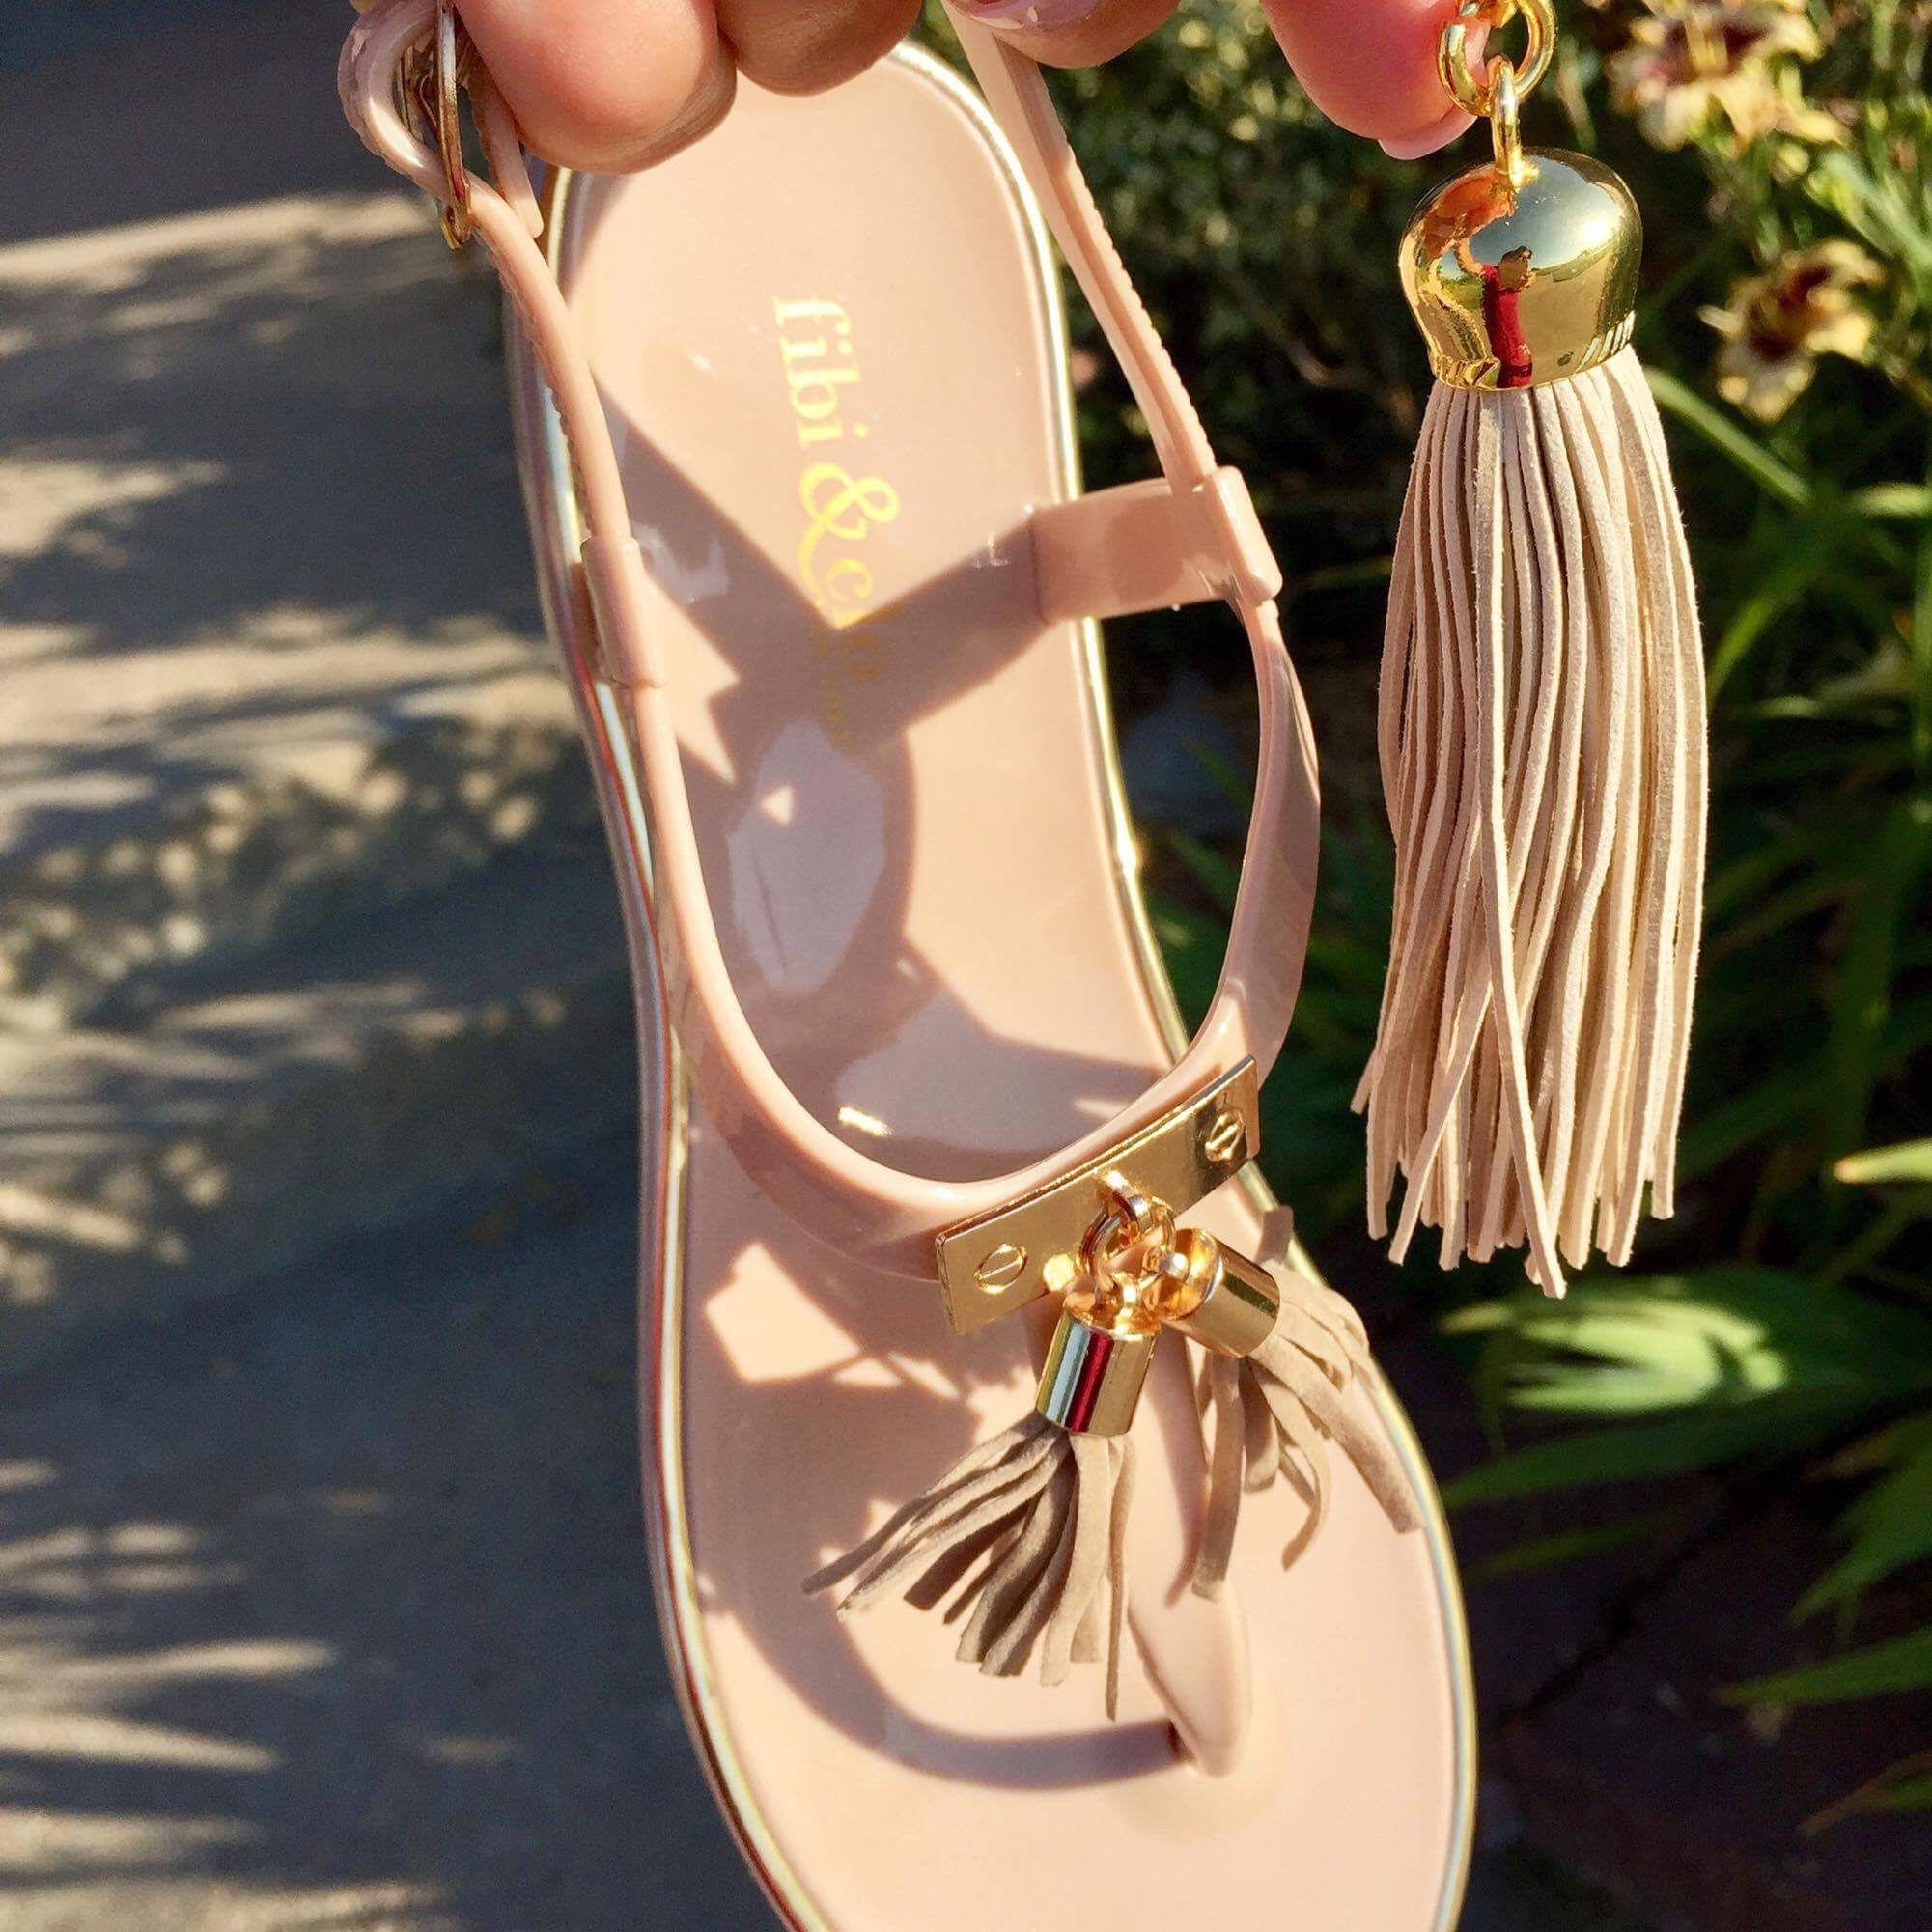 You could win this! The Cabana Jelly in  beige with gold trim .  Photo by Kathy Roush